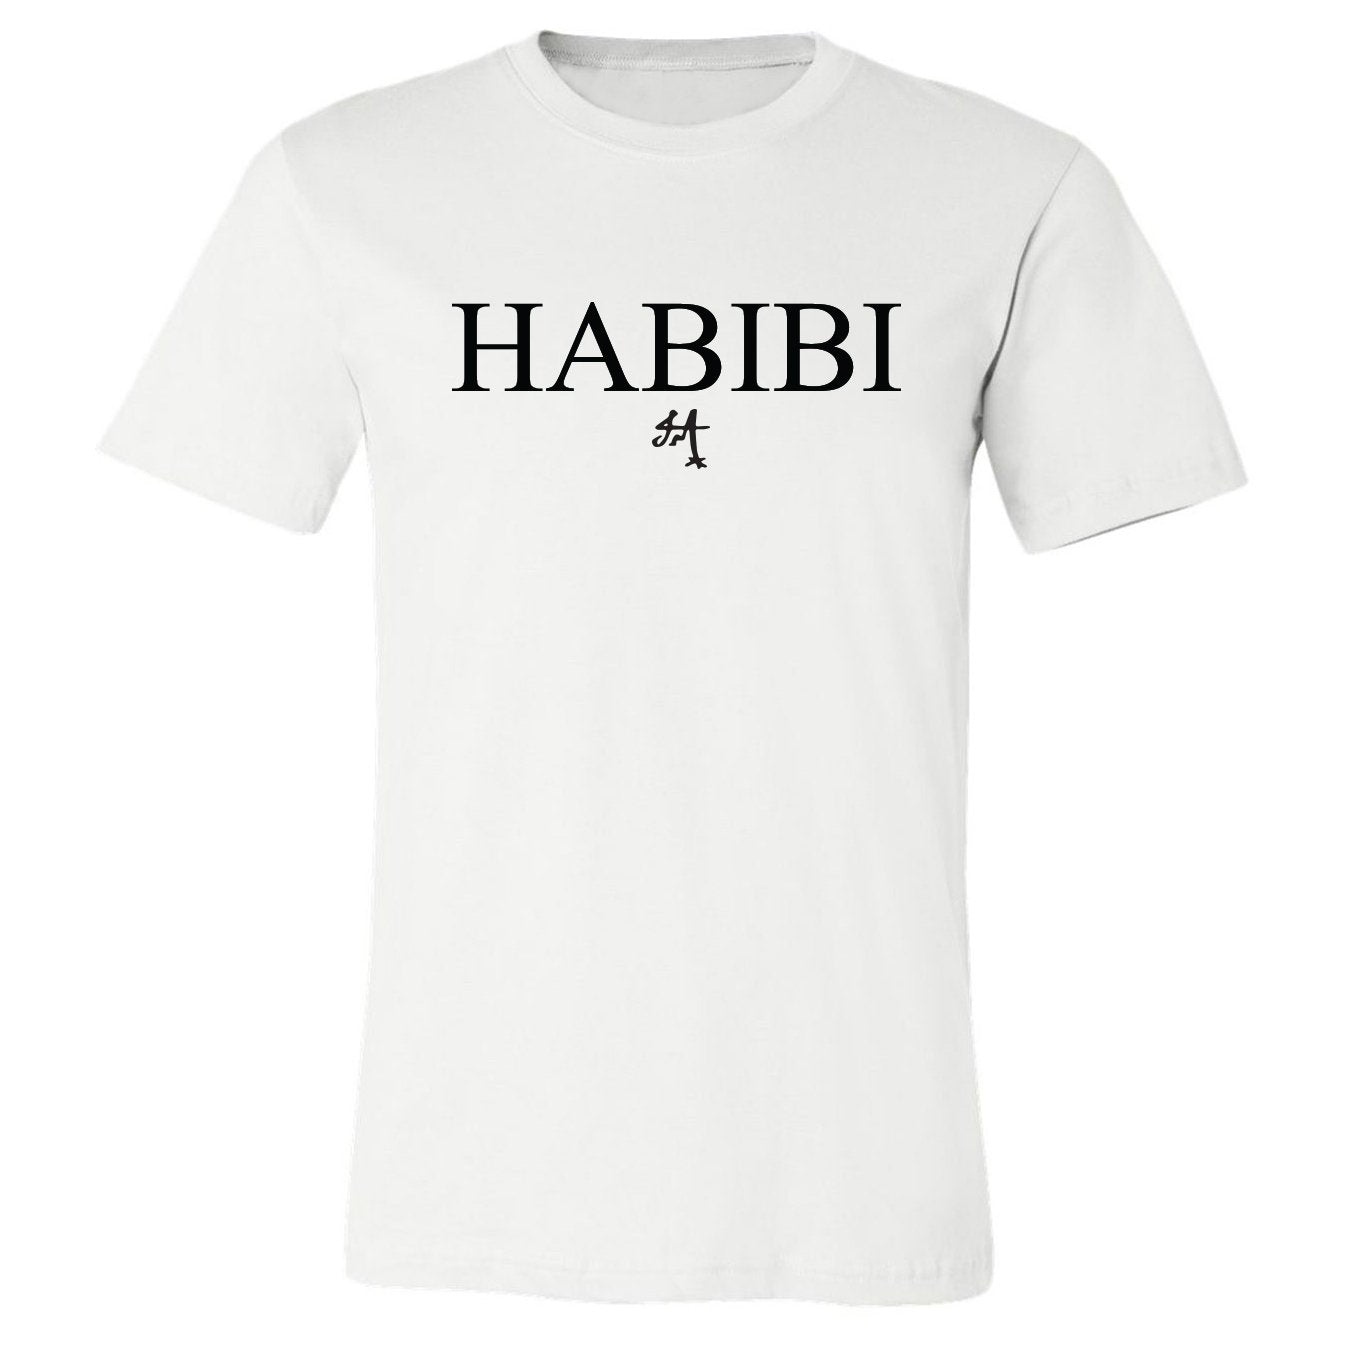 Classic White and Black Habibi Crewneck Tee